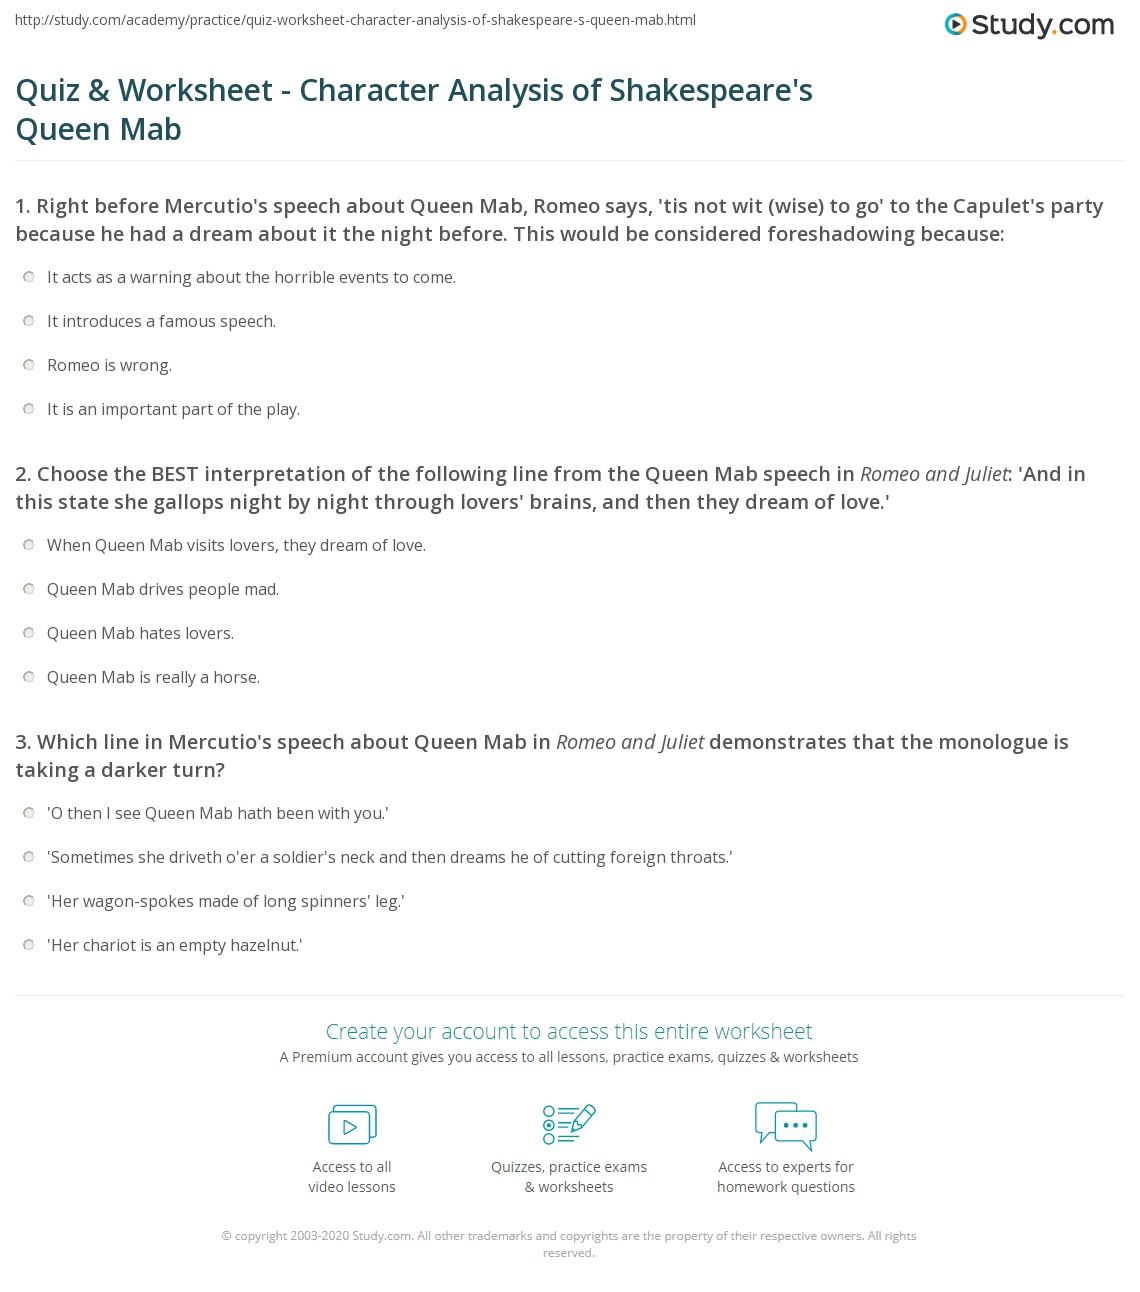 an analysis of the metaphysical issues in shakespeares hamlet A summary of themes in william shakespeare's hamlet learn exactly what happened in this chapter, scene, or section of hamlet and what it means perfect for acing essays, tests, and quizzes, as well as for writing lesson plans.